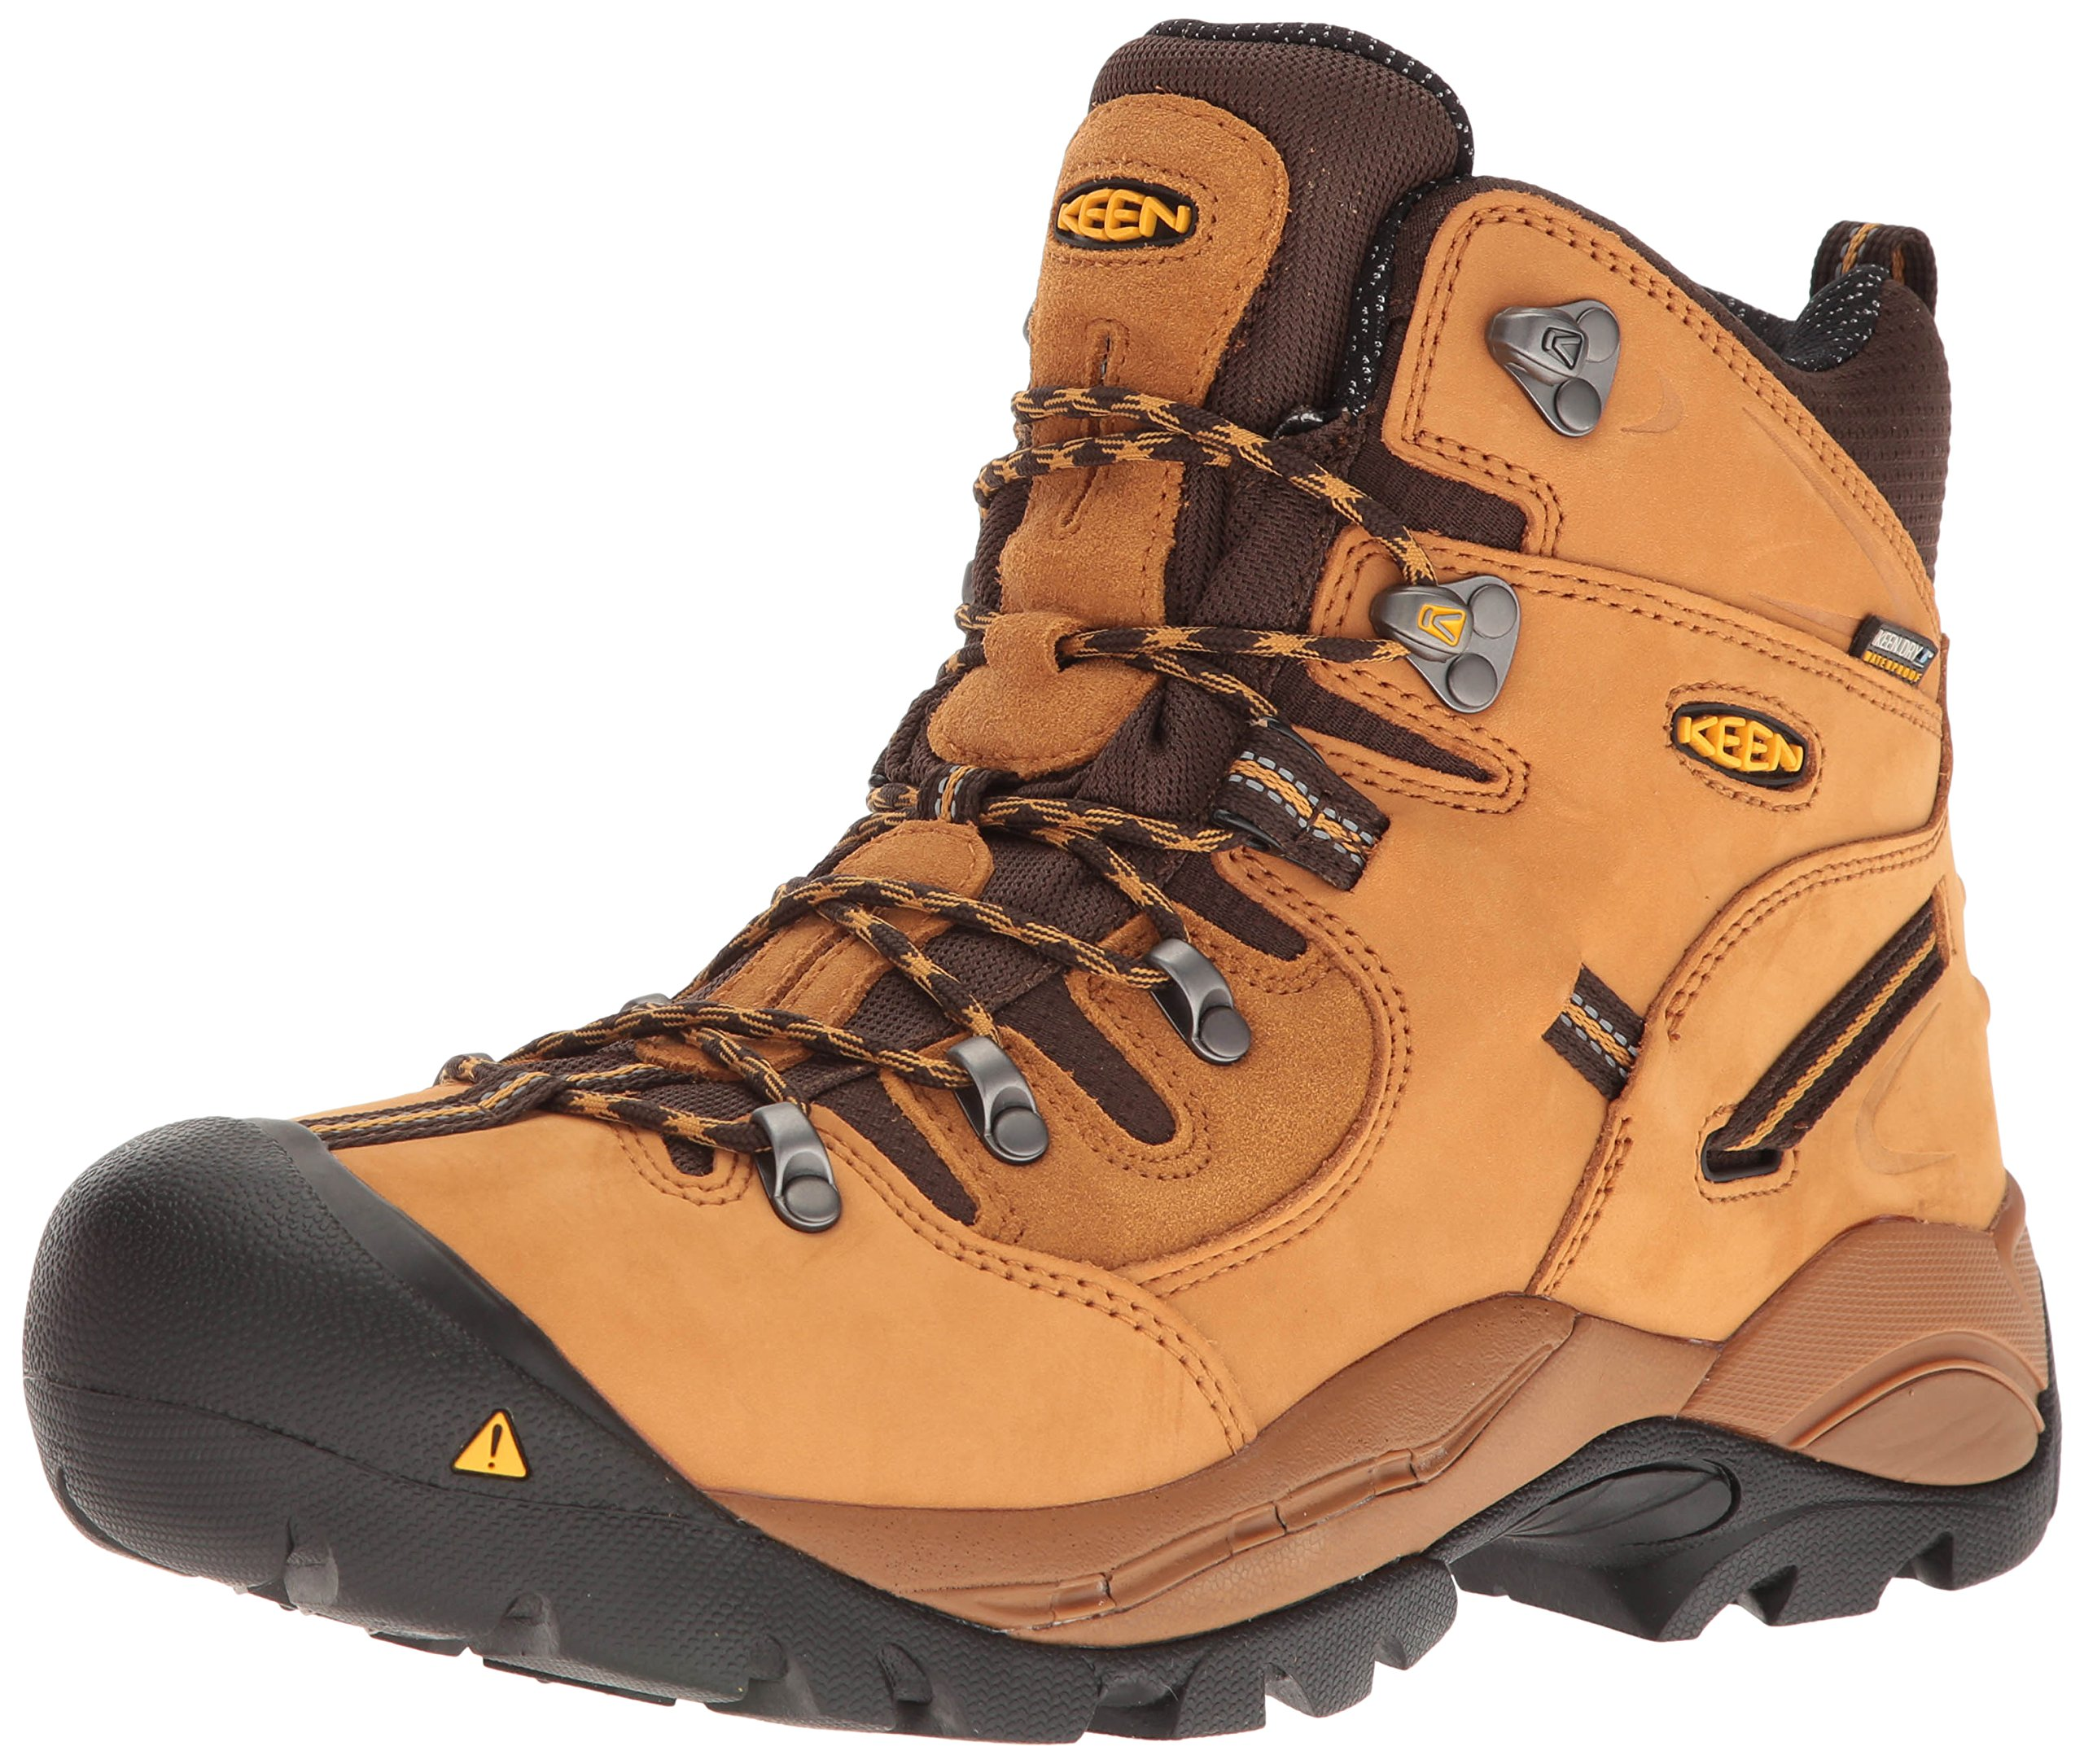 Keen Utility Men's Pittsburgh Industrial and Construction Shoe, Wheat, 12 2E US